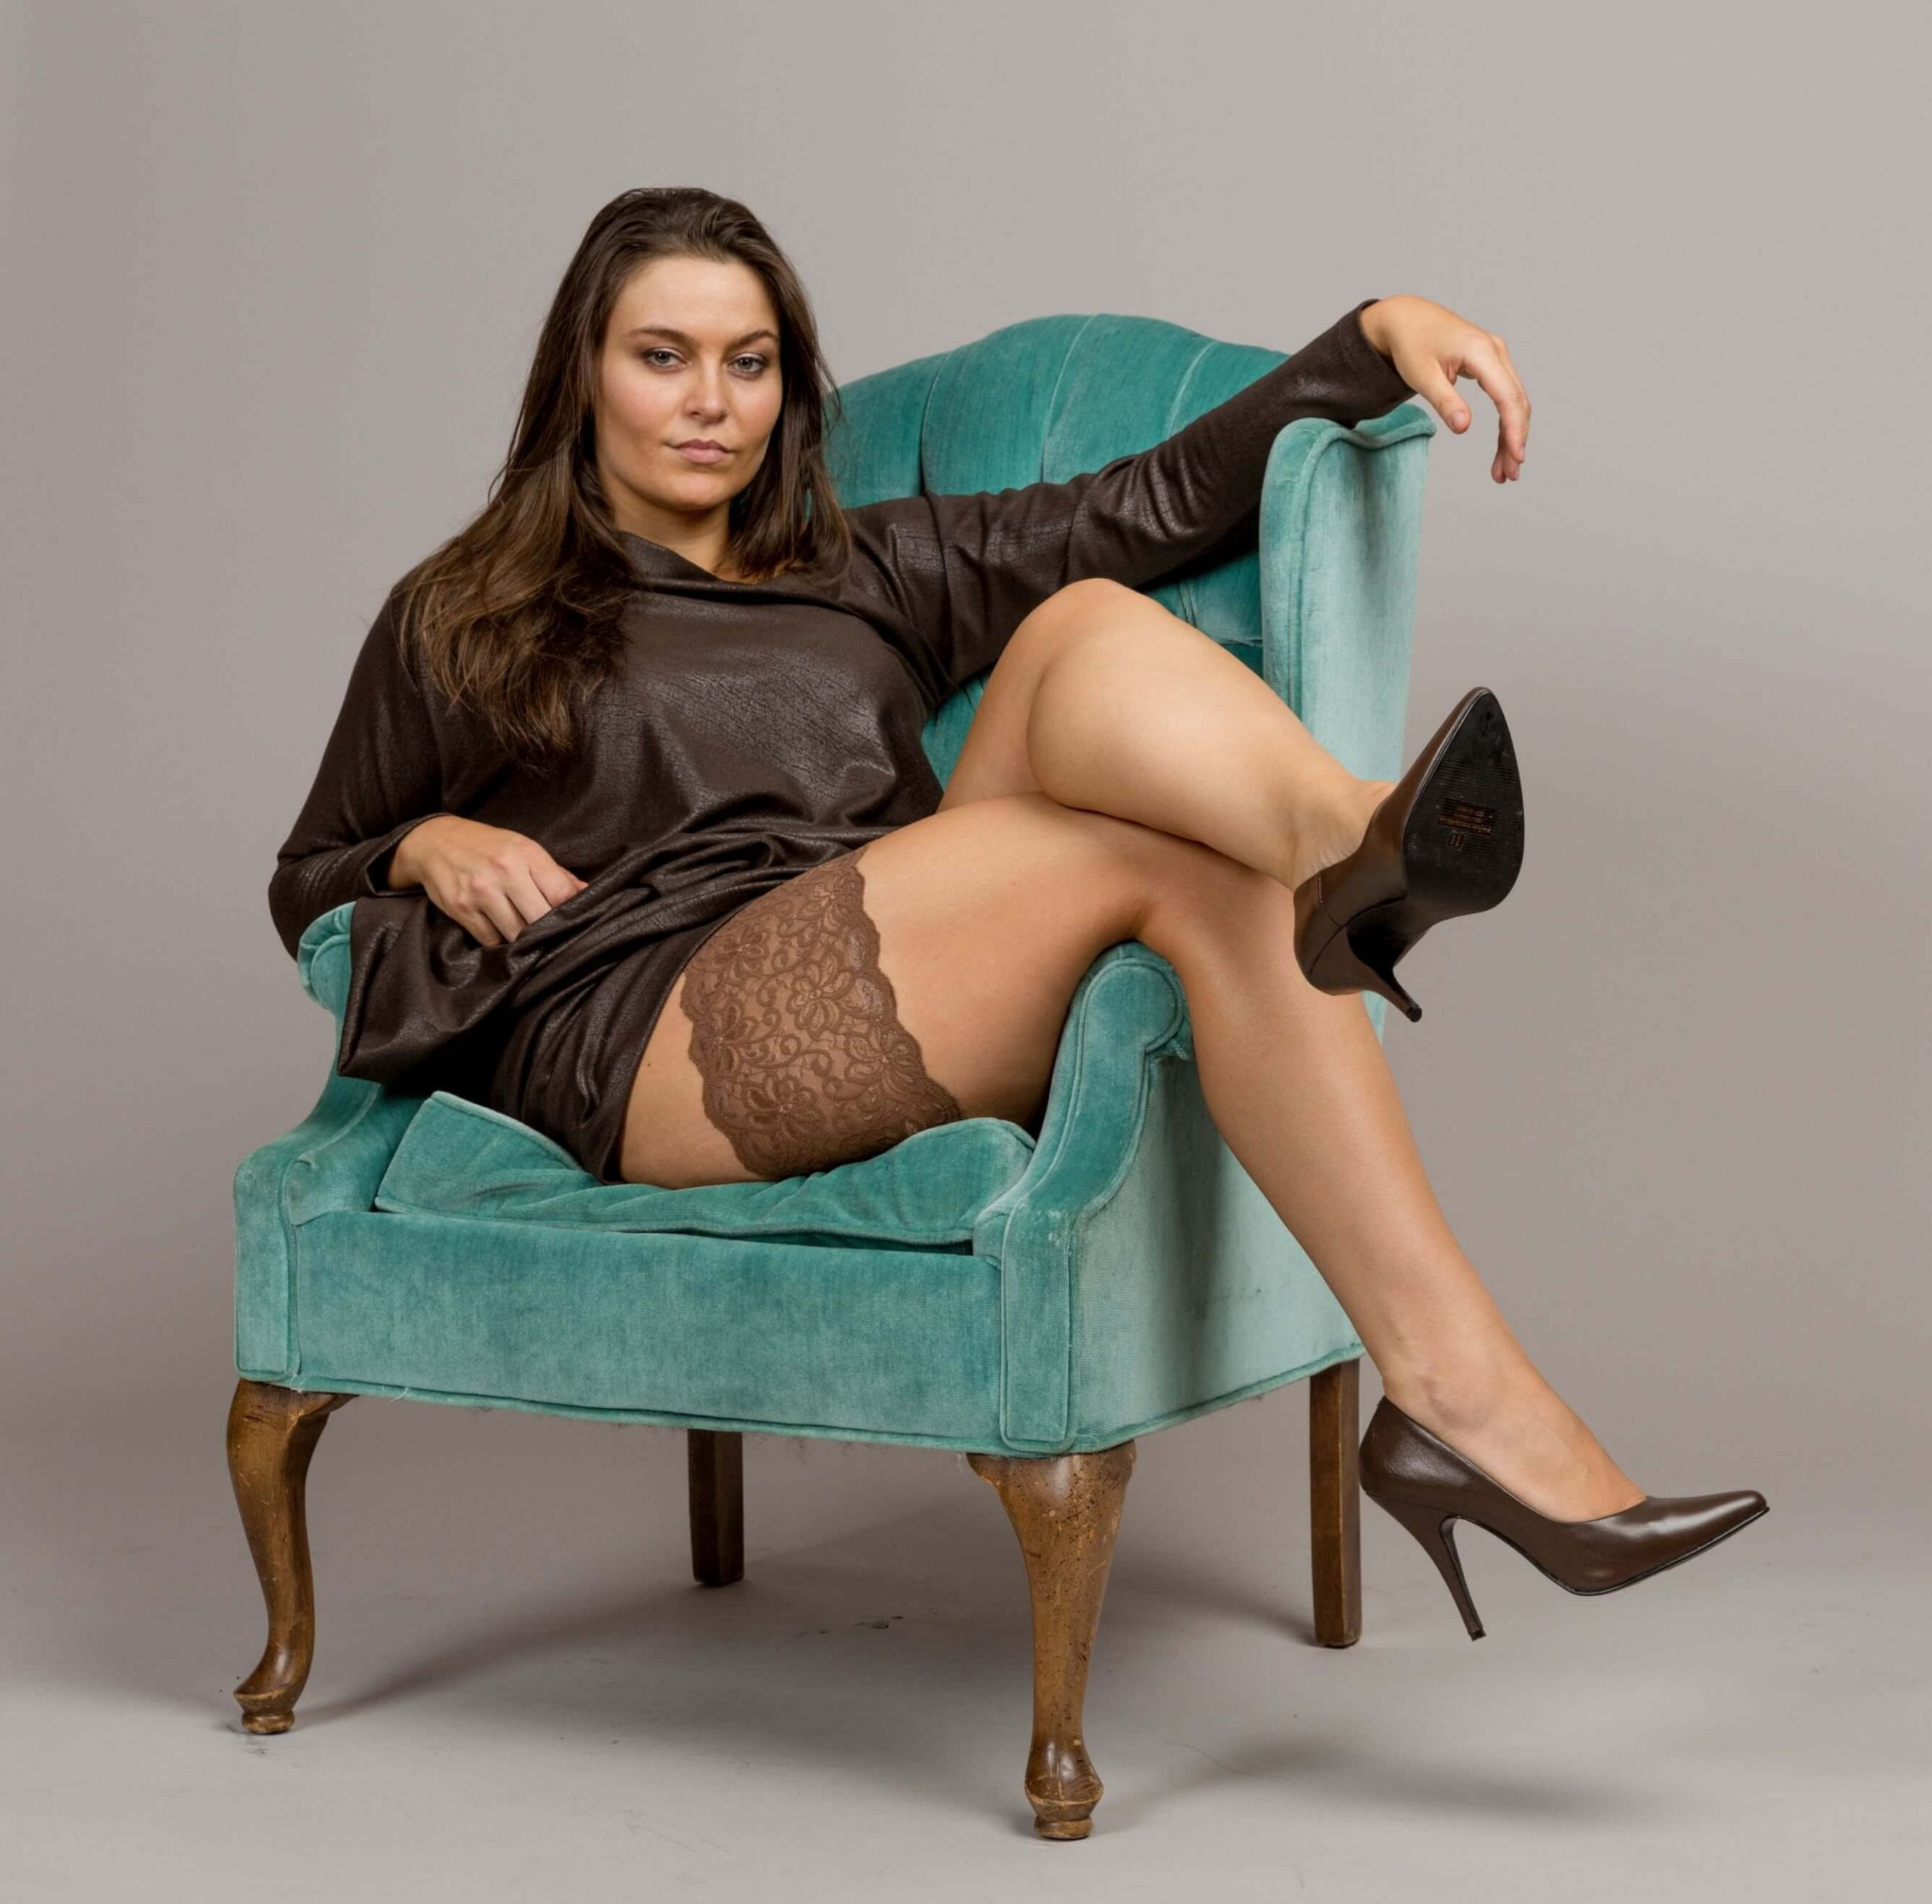 Bandelettes anti chafing thigh bands, model Dolce, made of gorgeous Italian lace help prevent thigh chafing and decorate your thighs!